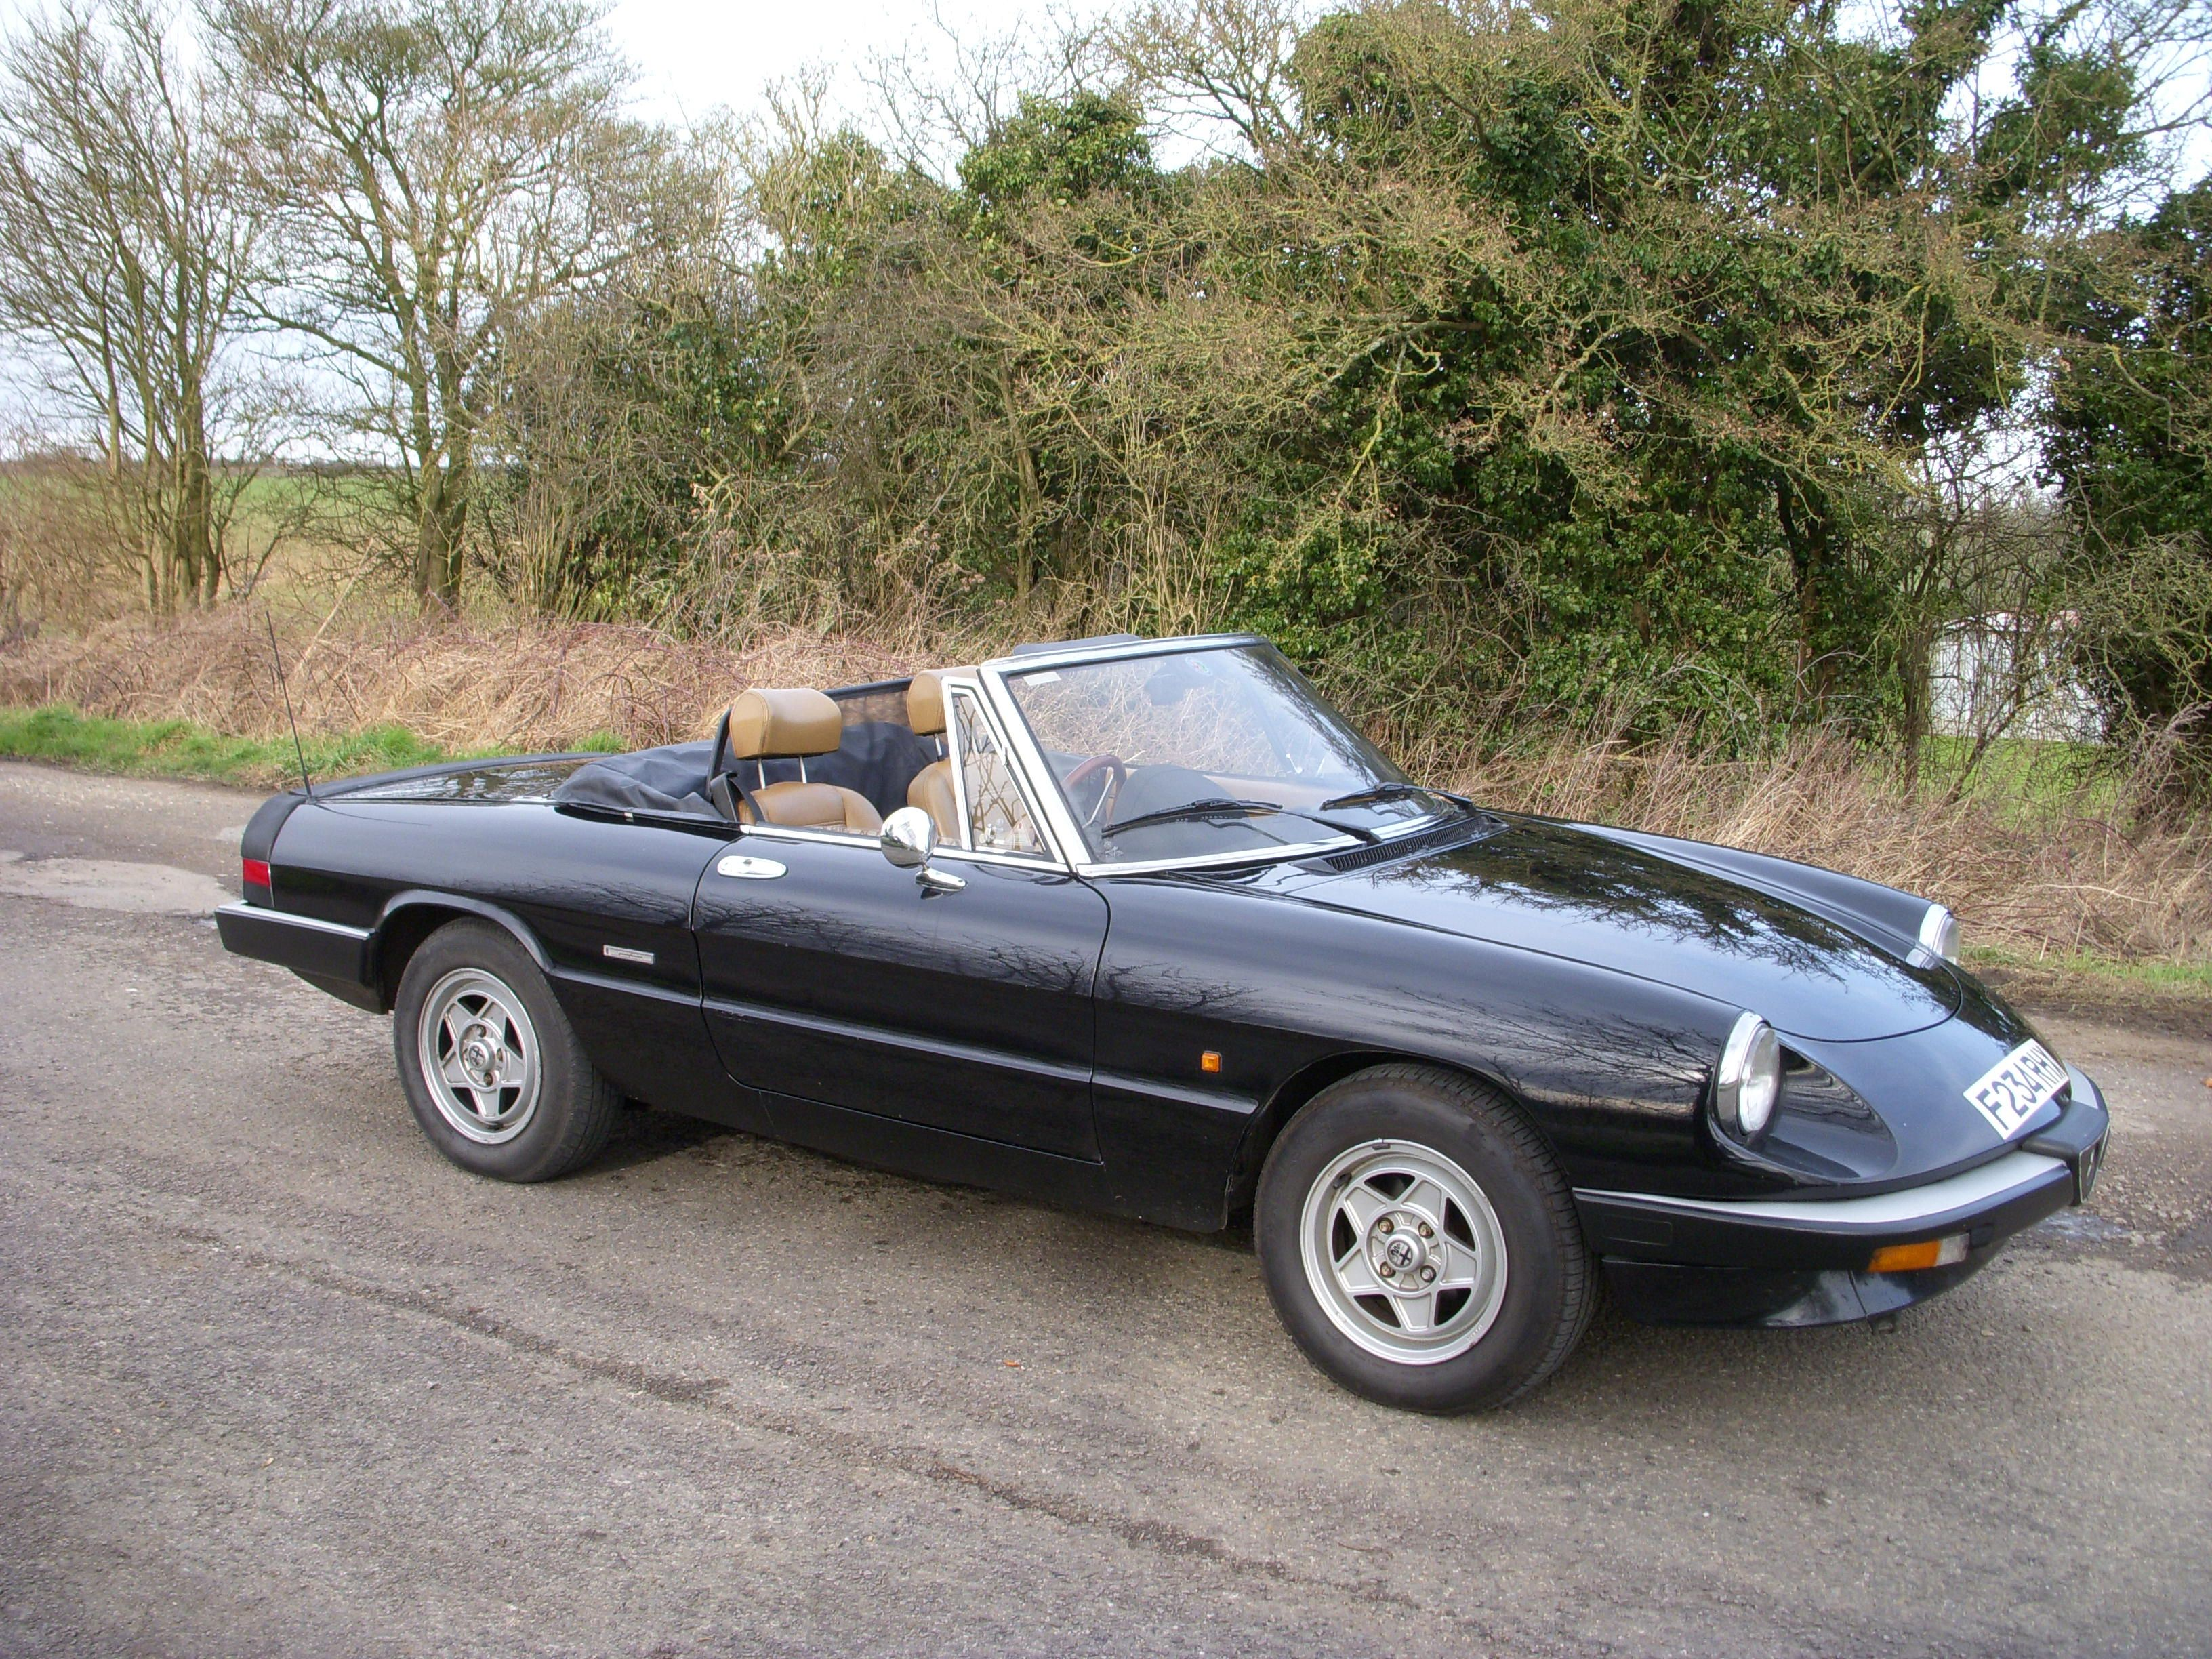 Alfa Romeo Spider So Many Memories Love This Car 3 4 Kids In The Duetto Back No Seat Belts 80s